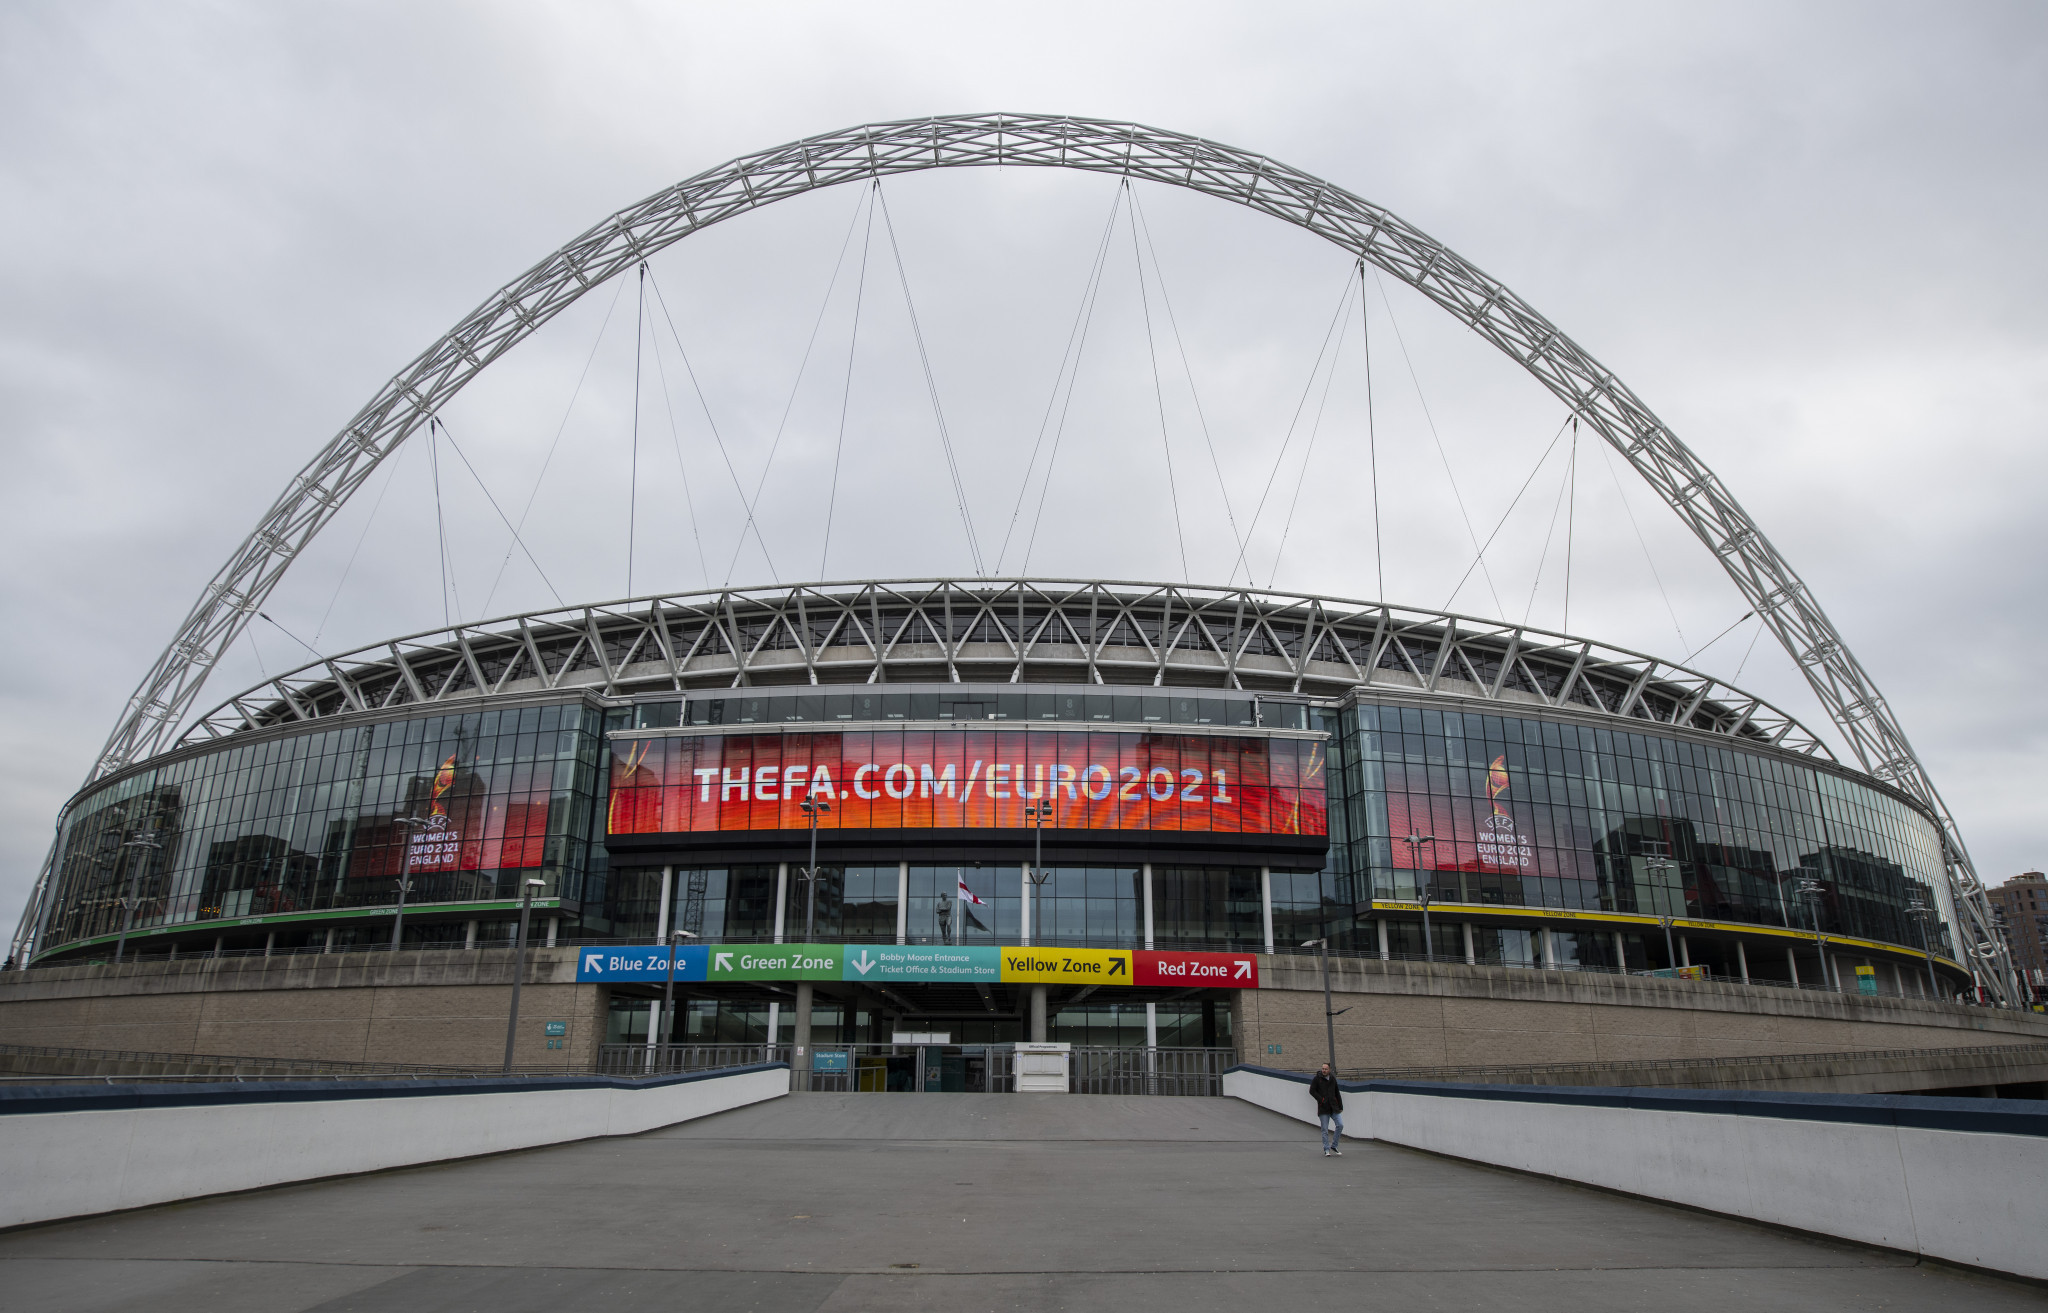 London's Wembley Stadium is due to host seven matches at the postponed Euro 2020 and fans could now be present following the easing of coronavirus restrictions in time for the tournament ©Getty Images